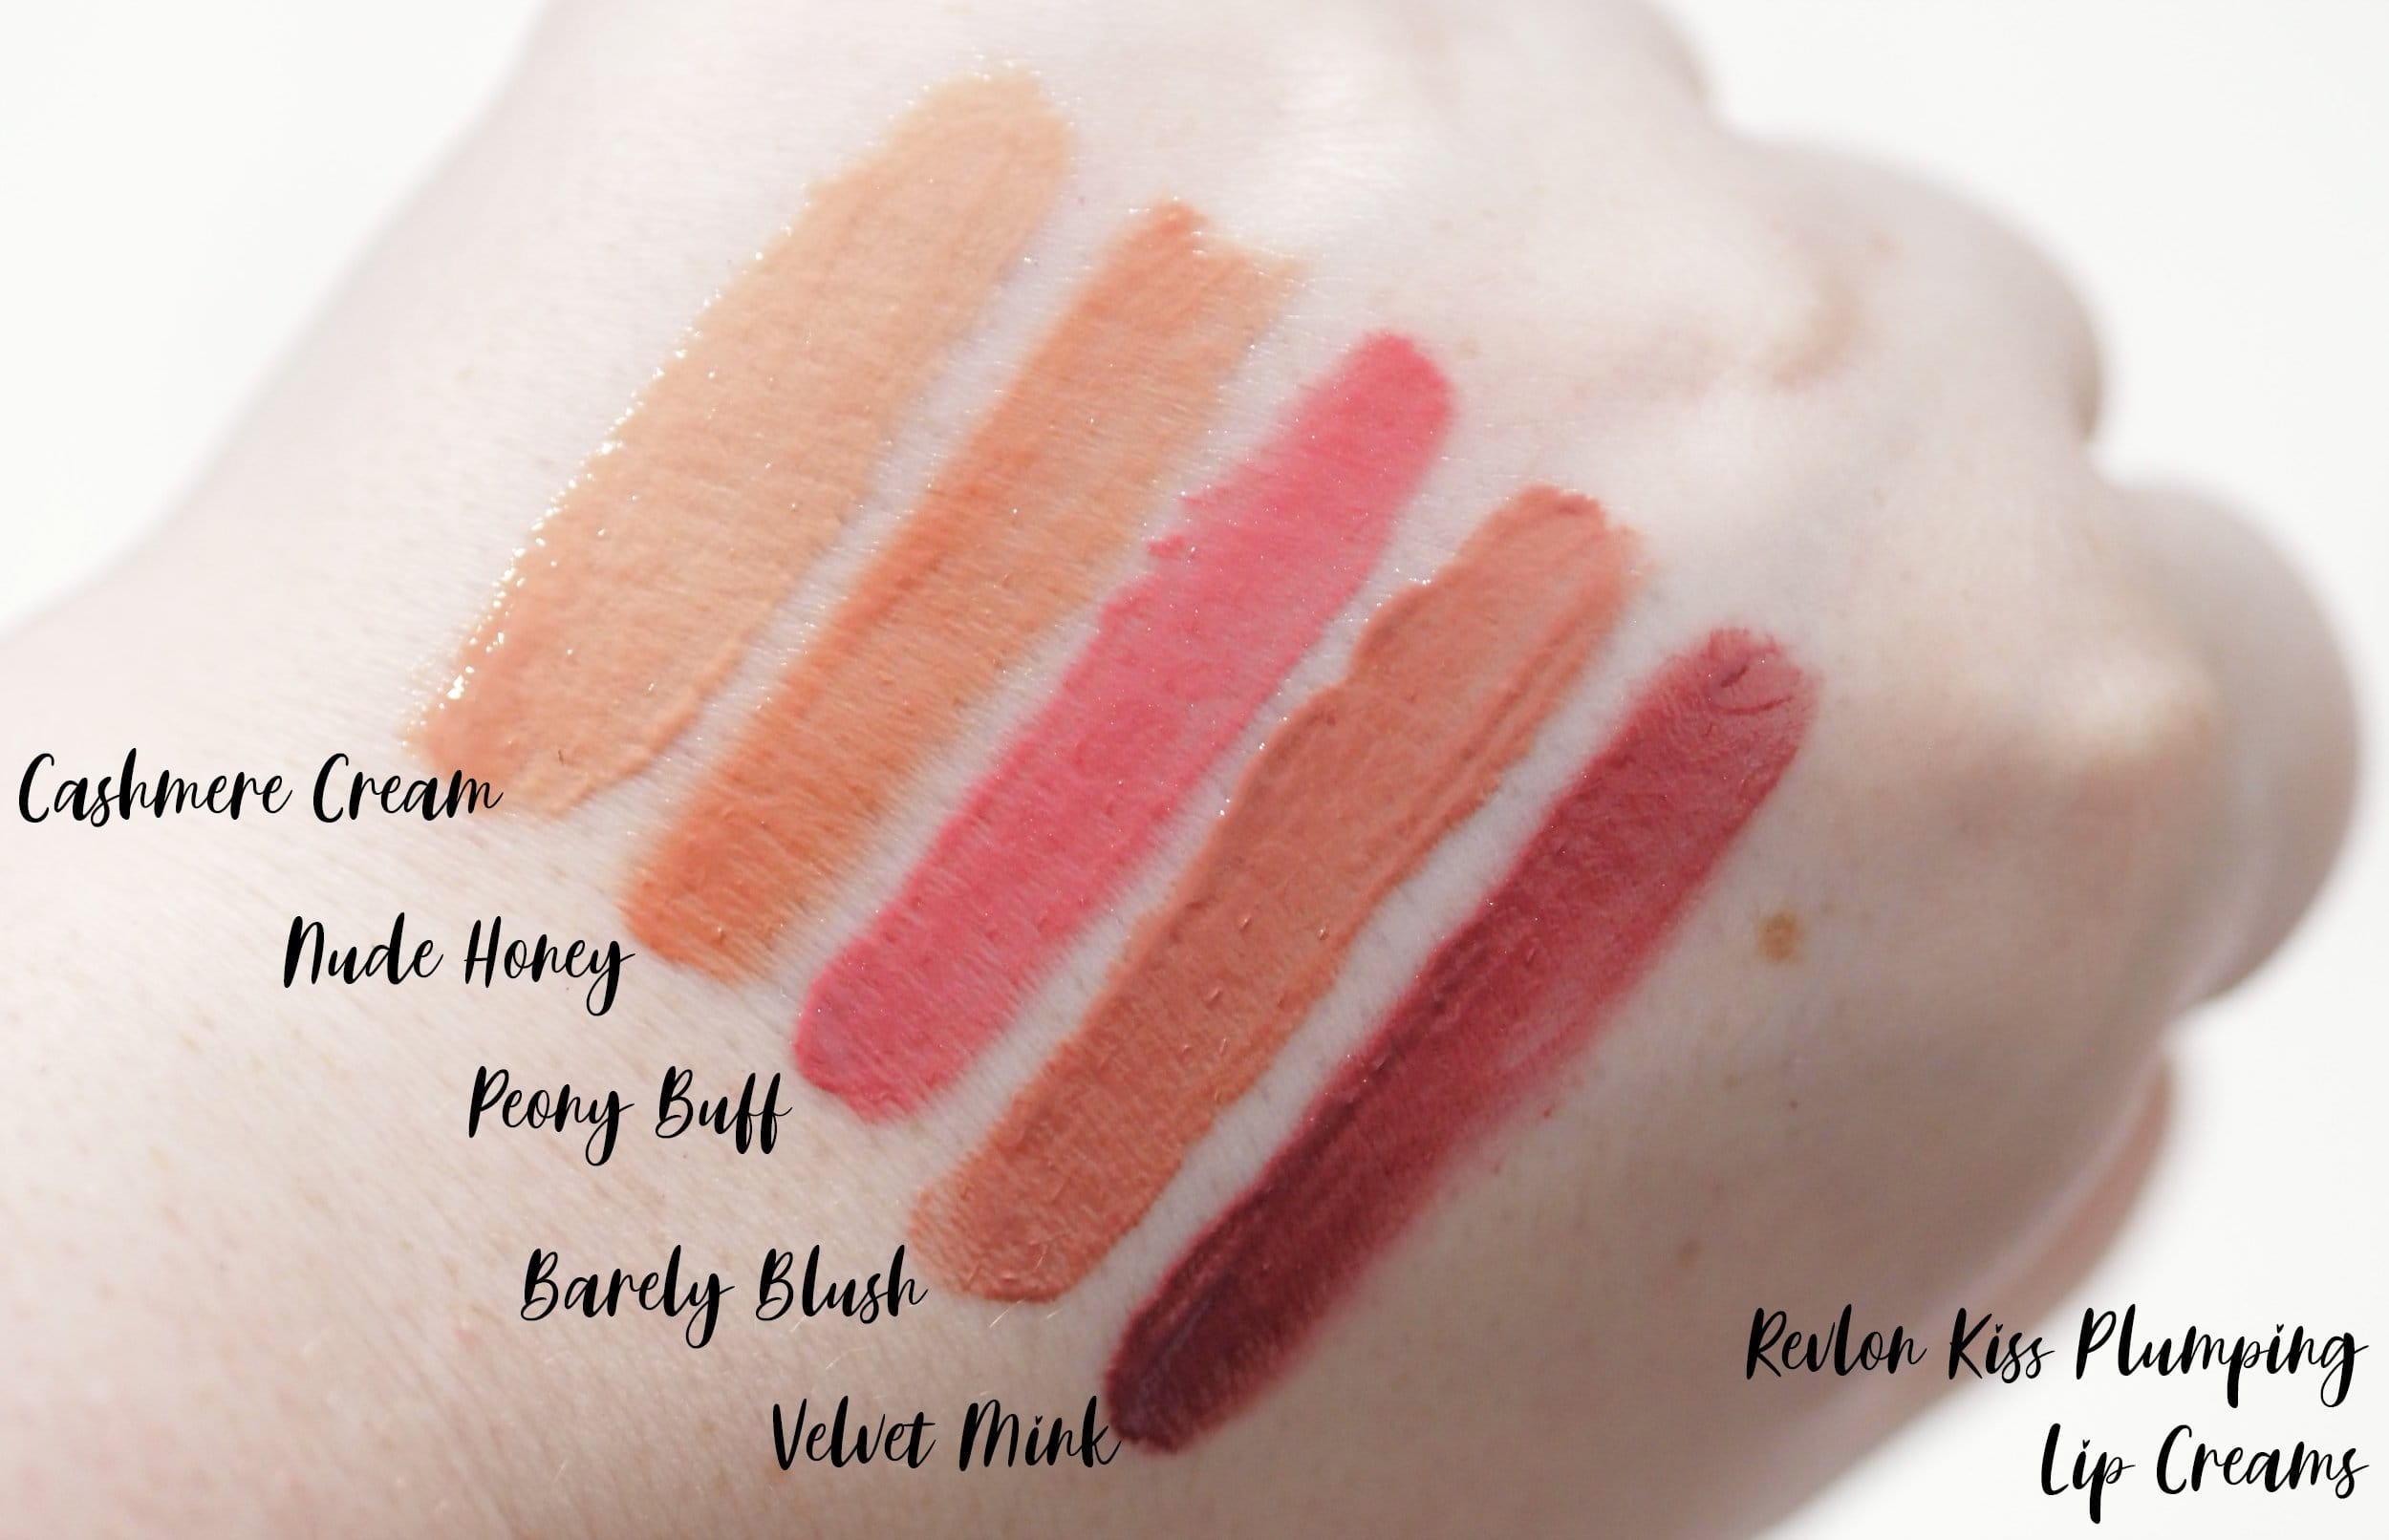 Review and Swatches of the Revlon Kiss Plumping Lip Cremes in the shades Cashmere Cream, Nude Honey, Peony Buff, Barely Blush and Velvet Mink